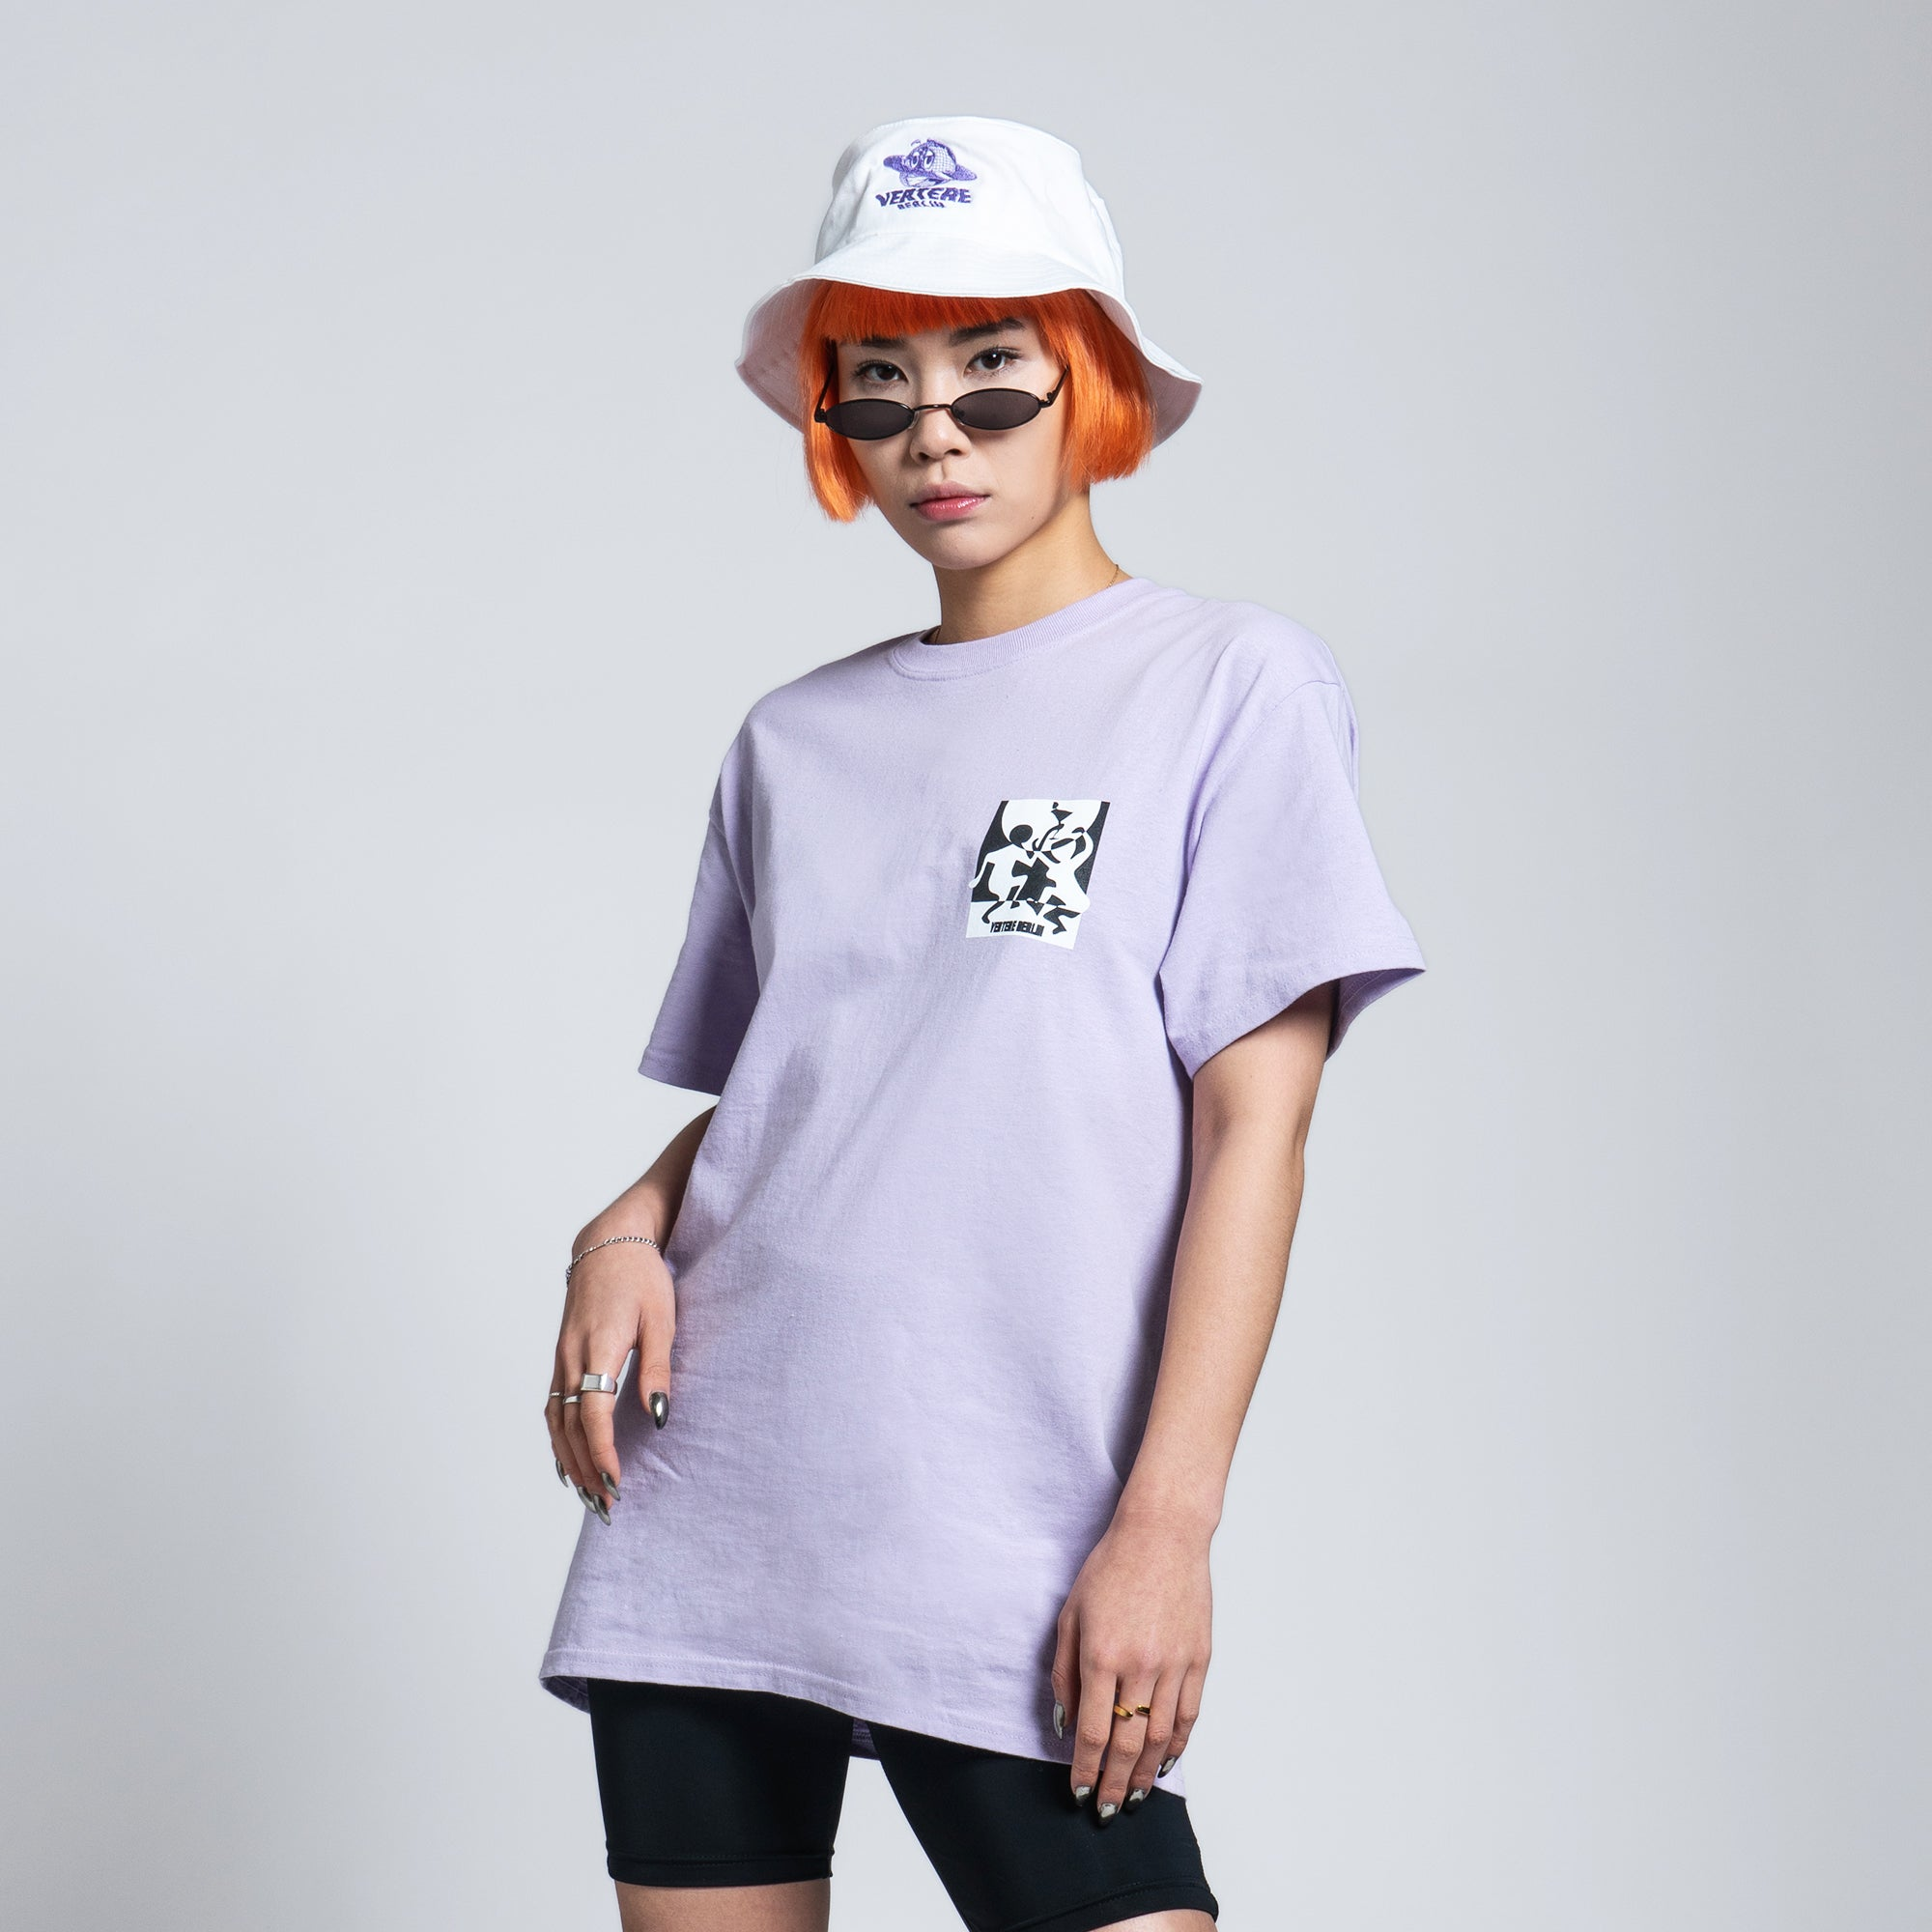 MIDNIGHT MAGIC T-SHIRT - LIGHT-PURPLE